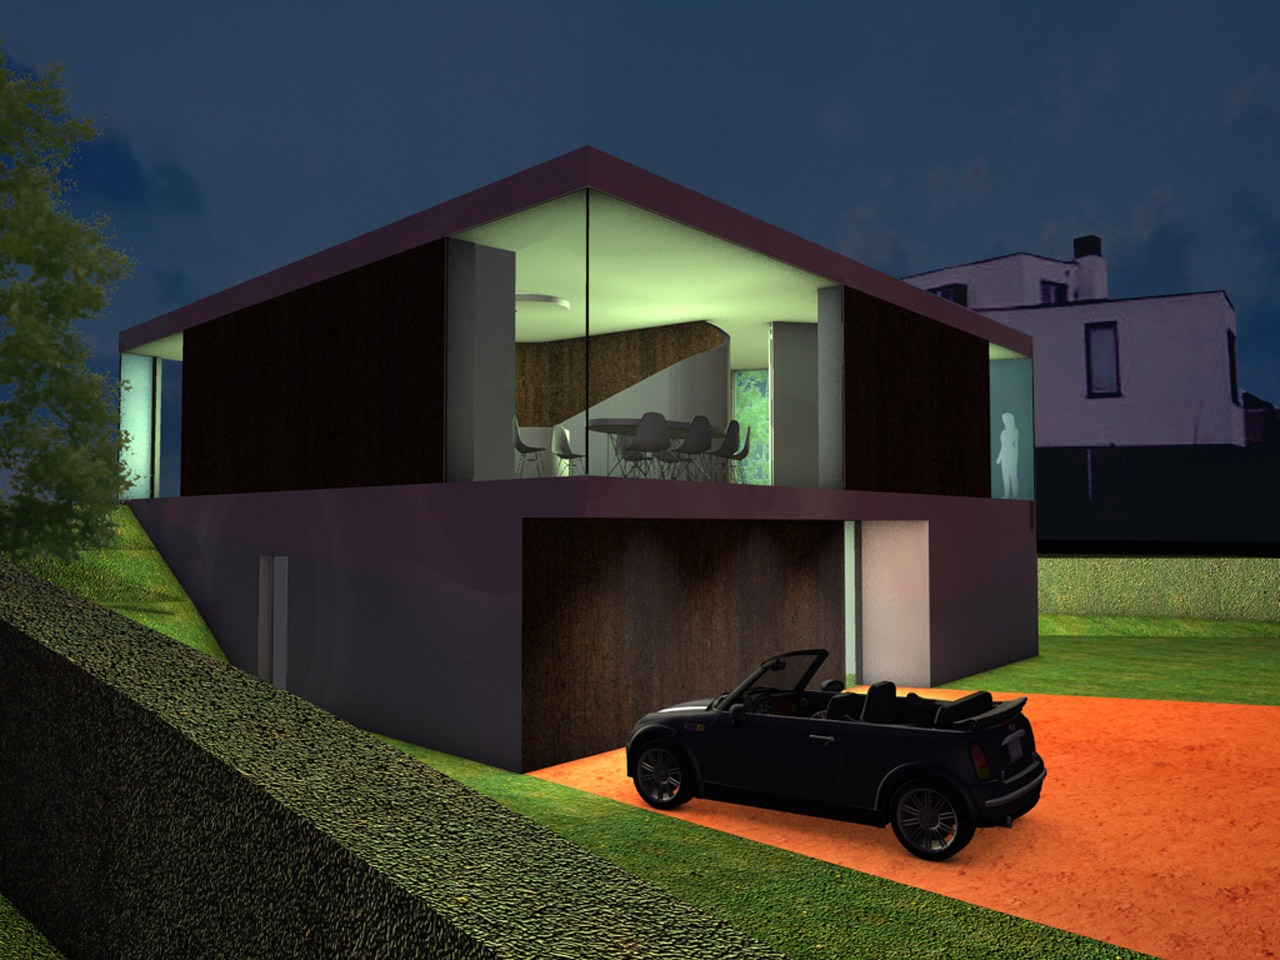 Render of Outback House at night